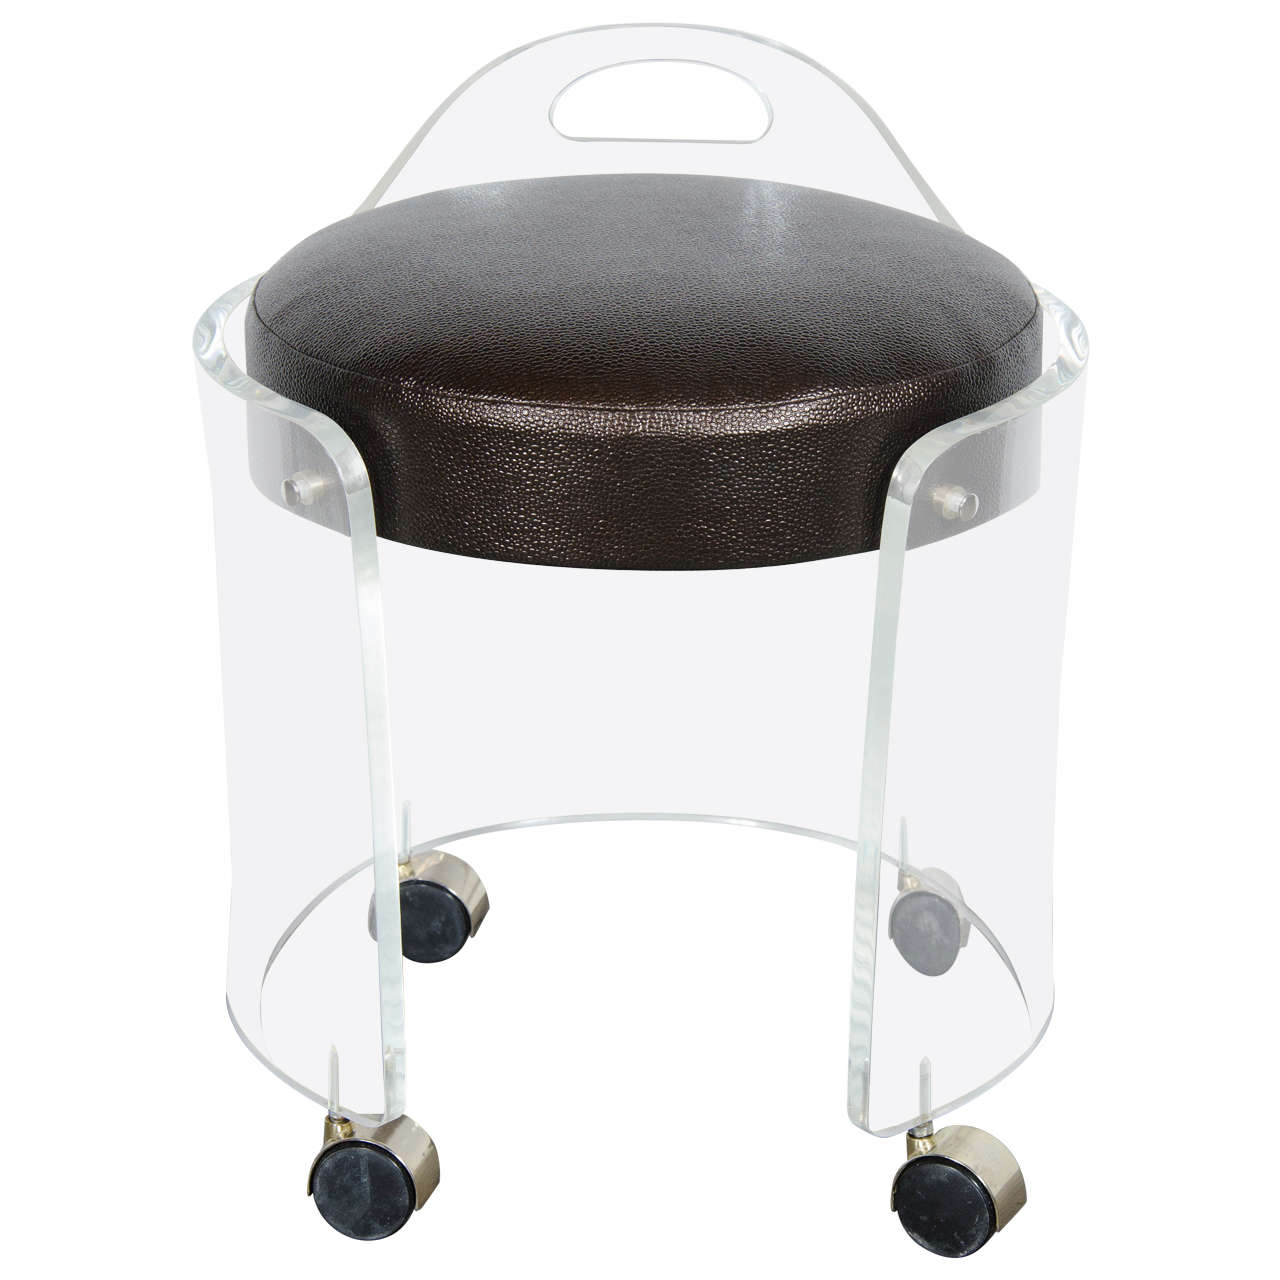 Mid-Century Modernist Round Lucite Stool with Faux Bronze Shagreen Upholstery